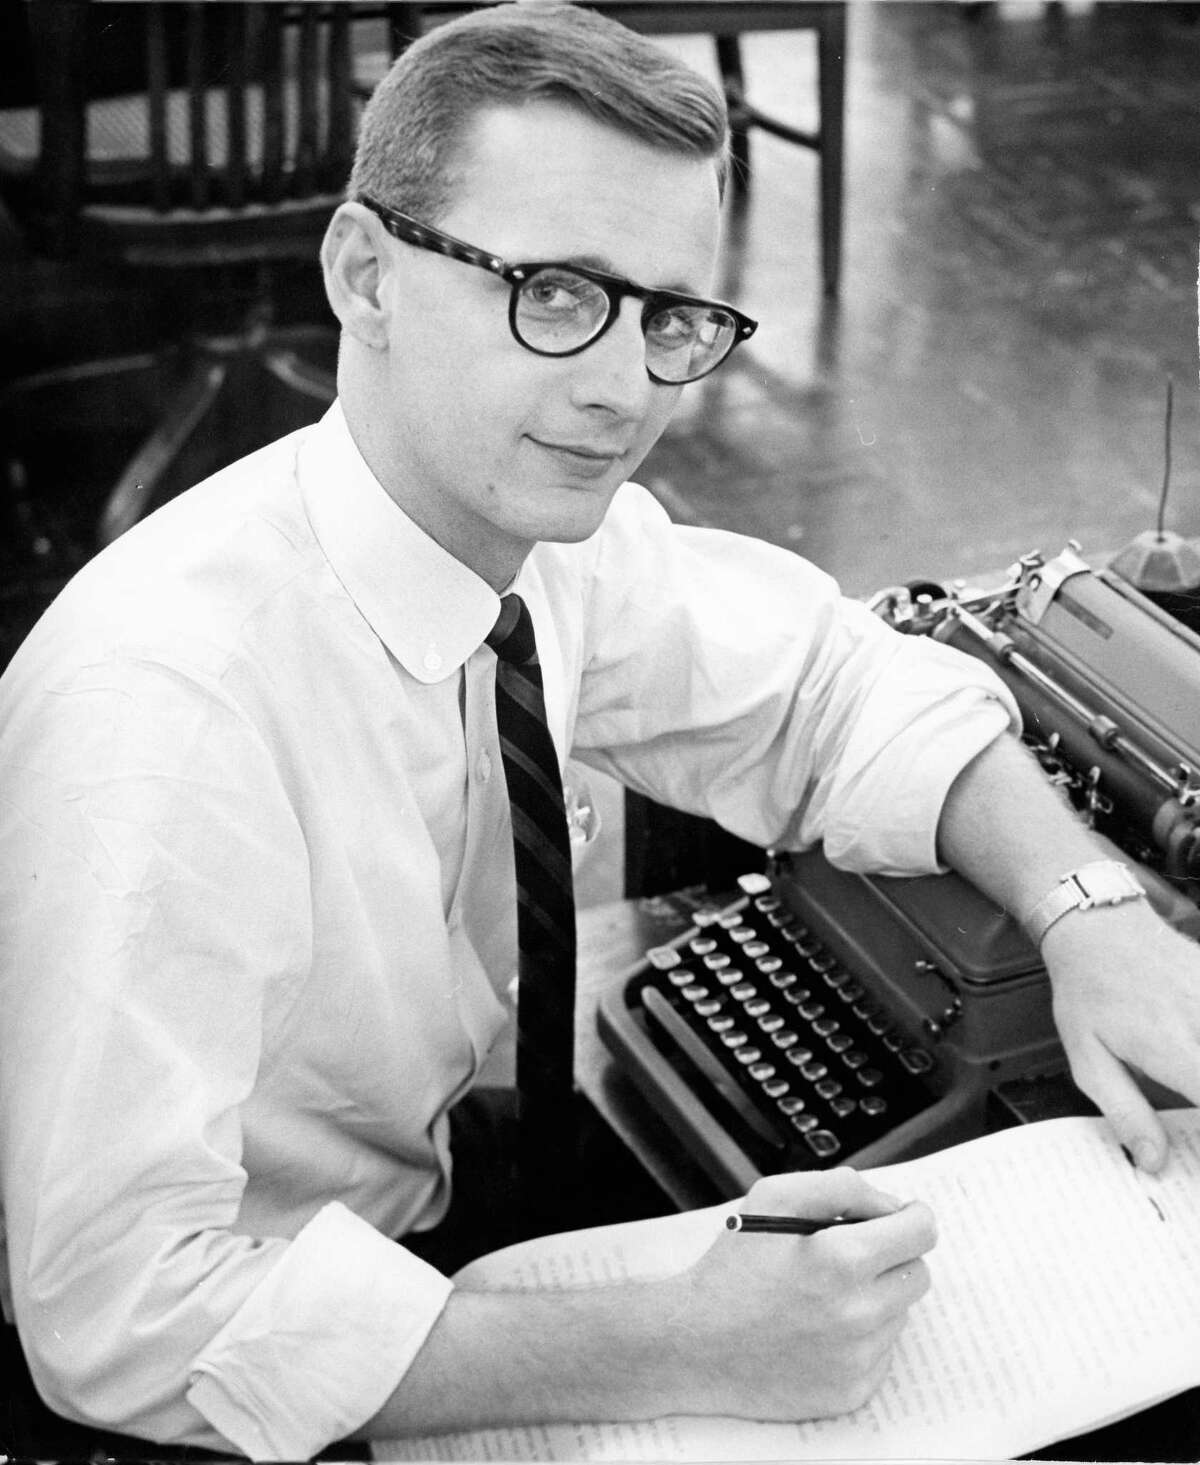 Donald Barthelme worked at the Houston Post as an entertainment reporter and critic.